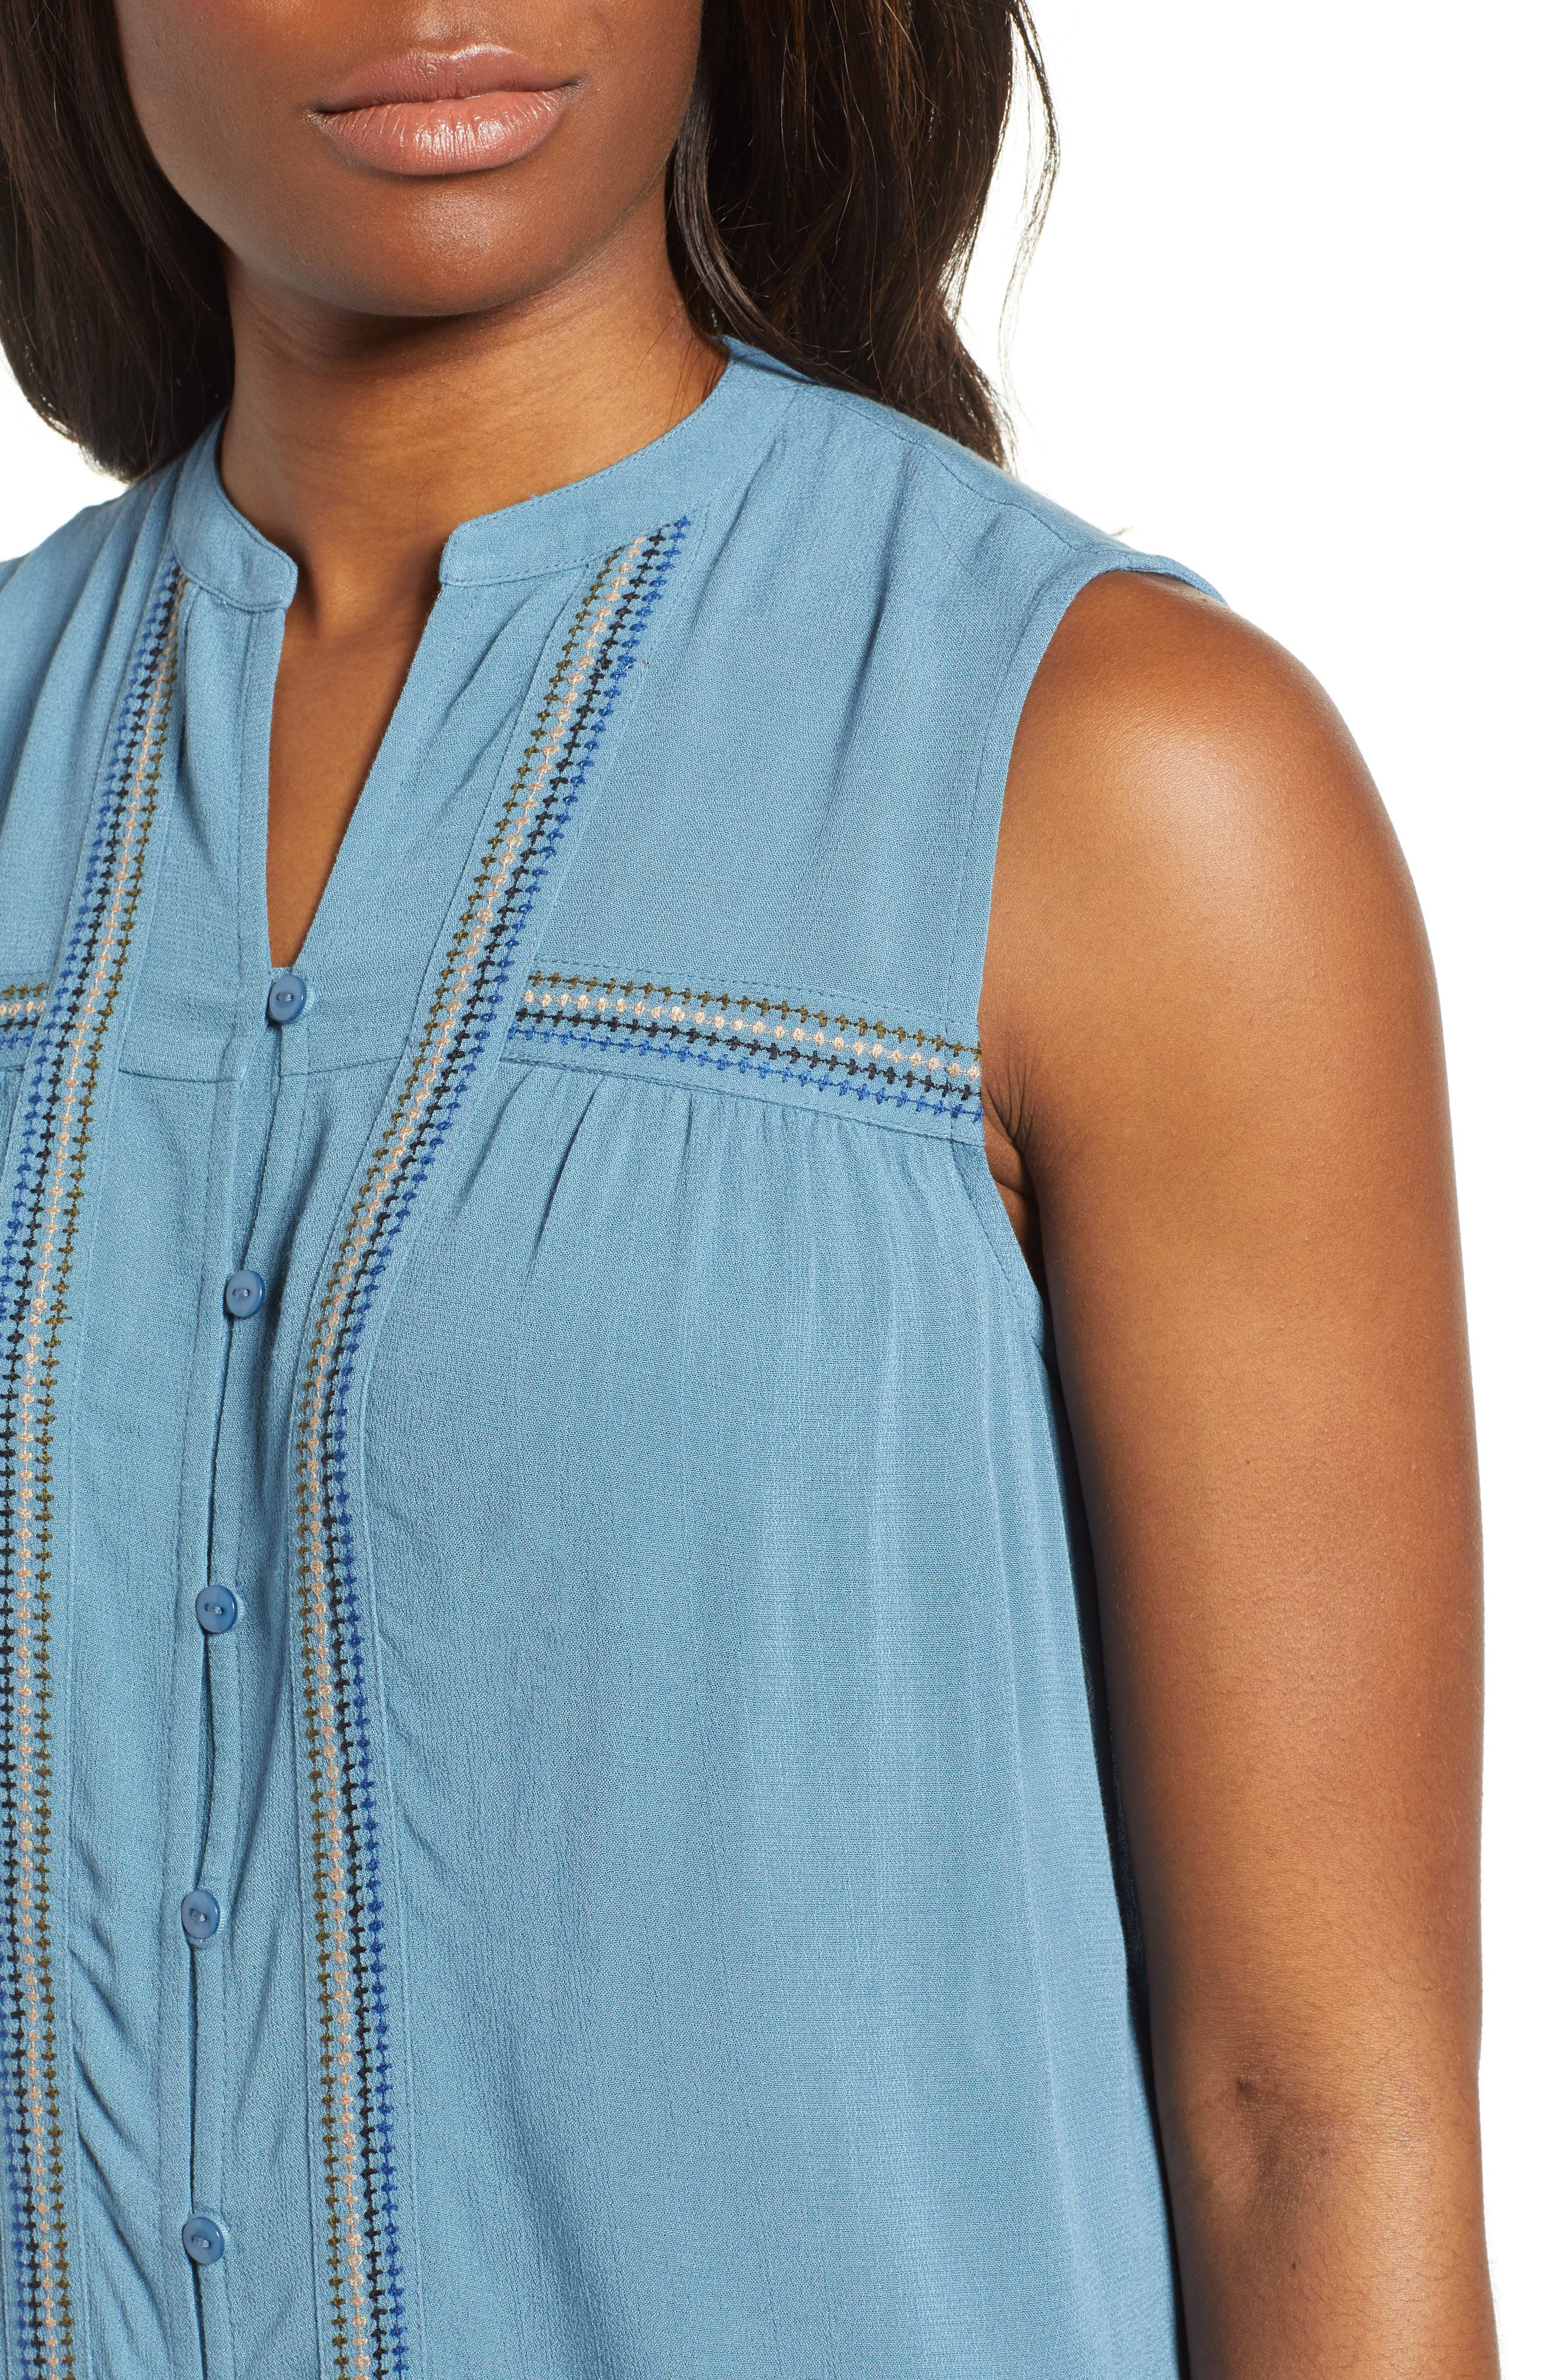 Lucky Embroidered Tank Top,                             Alternate thumbnail 4, color,                             450